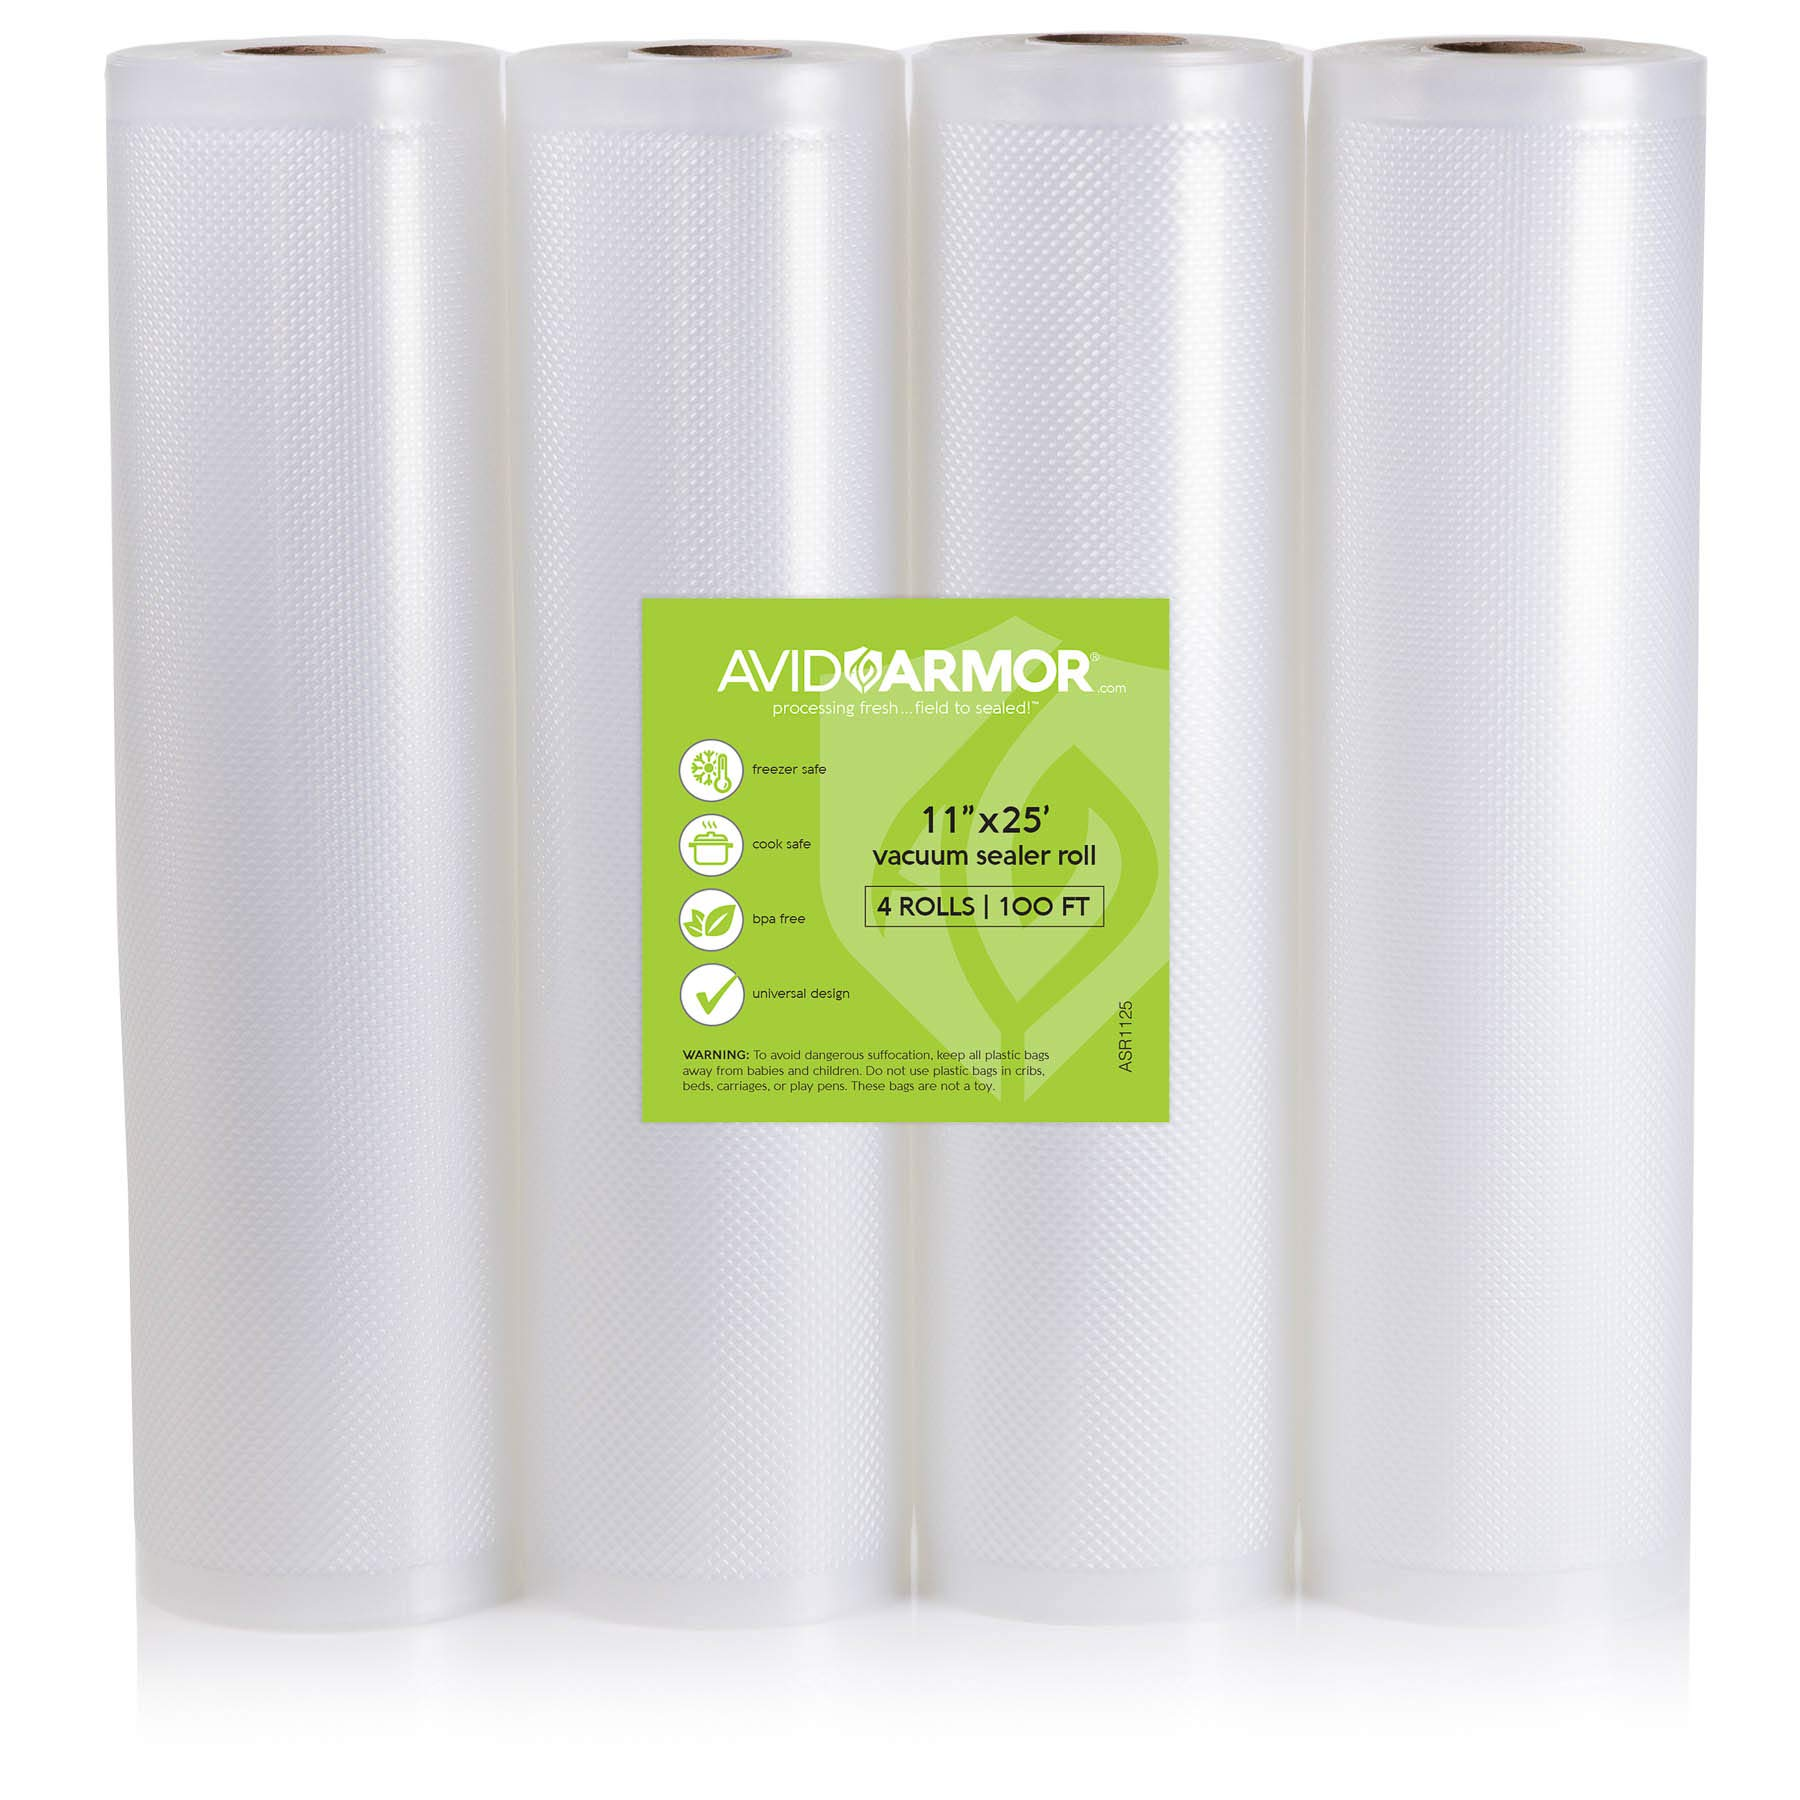 Food Saver Bags Rolls 4 Pack 11'' x 25 Feet for Foodsaver, Seal a Meal Vacuum Sealer FITS INSIDE MACHINE STORAGE AREA Heavy Duty, Sous Vide Vaccume, Cut to Size Roll BPA Free 100 Feet Avid Armor